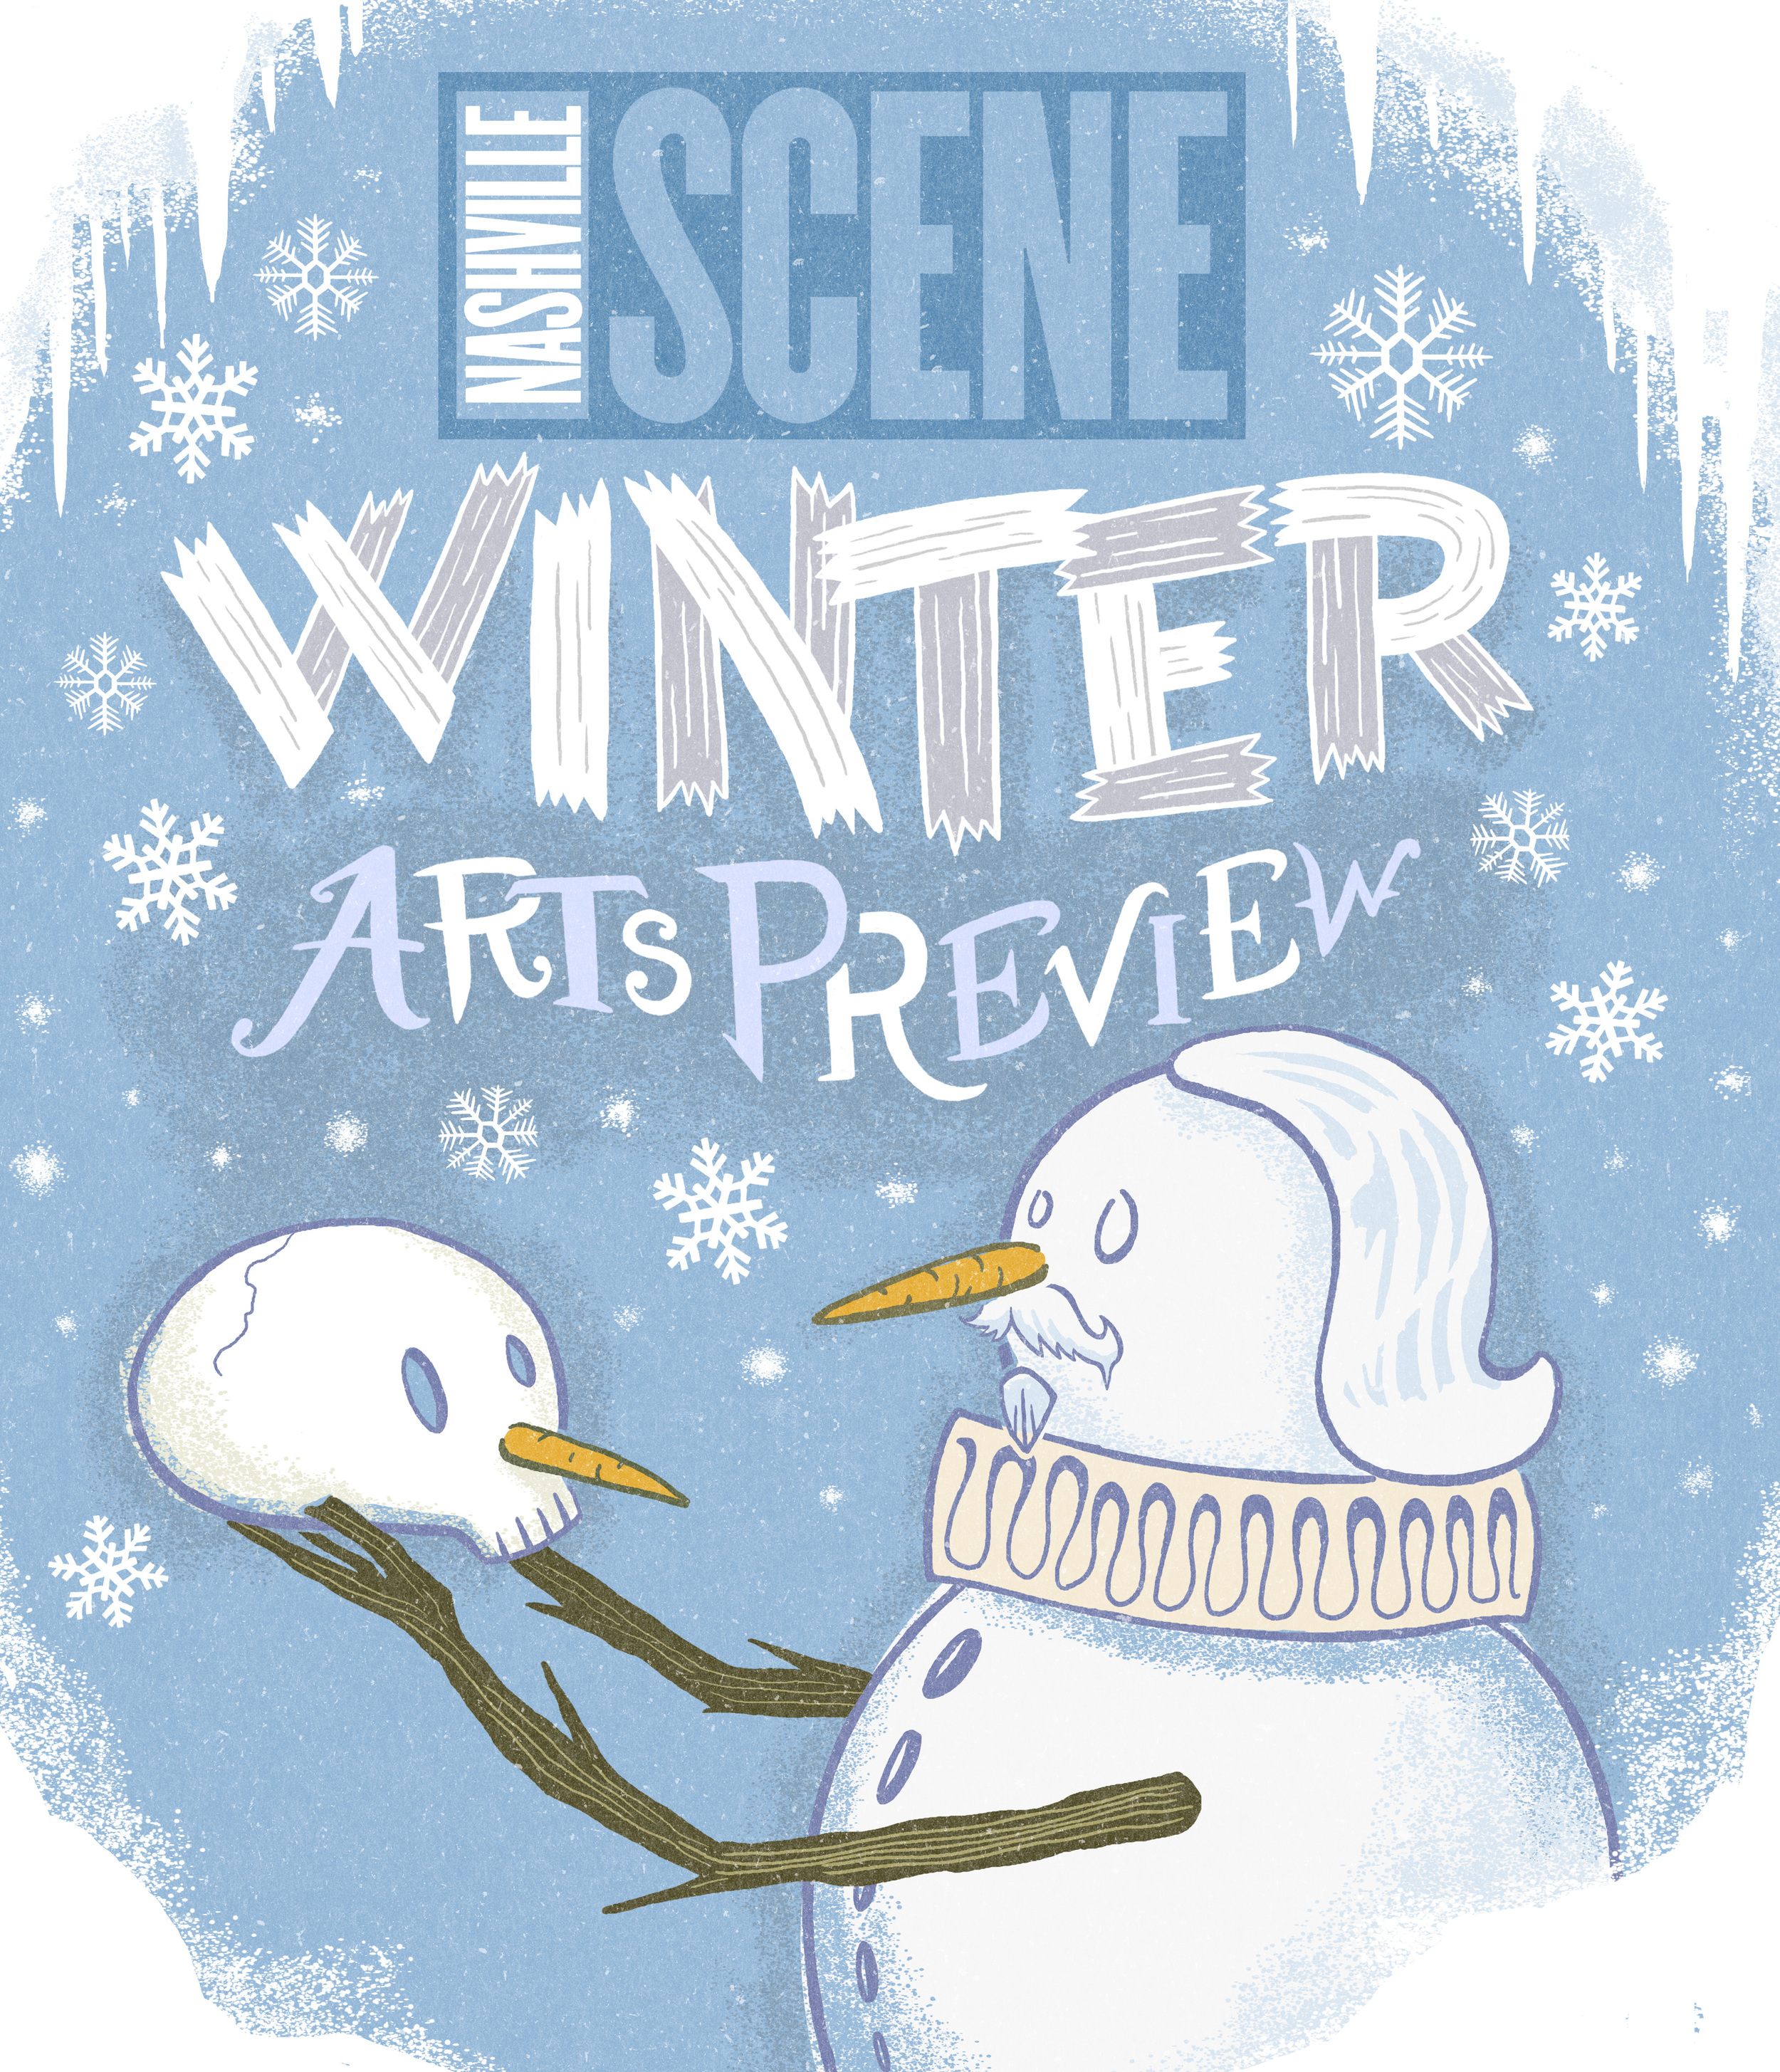 Winter Arts Preview Cover-PROOF2.jpg